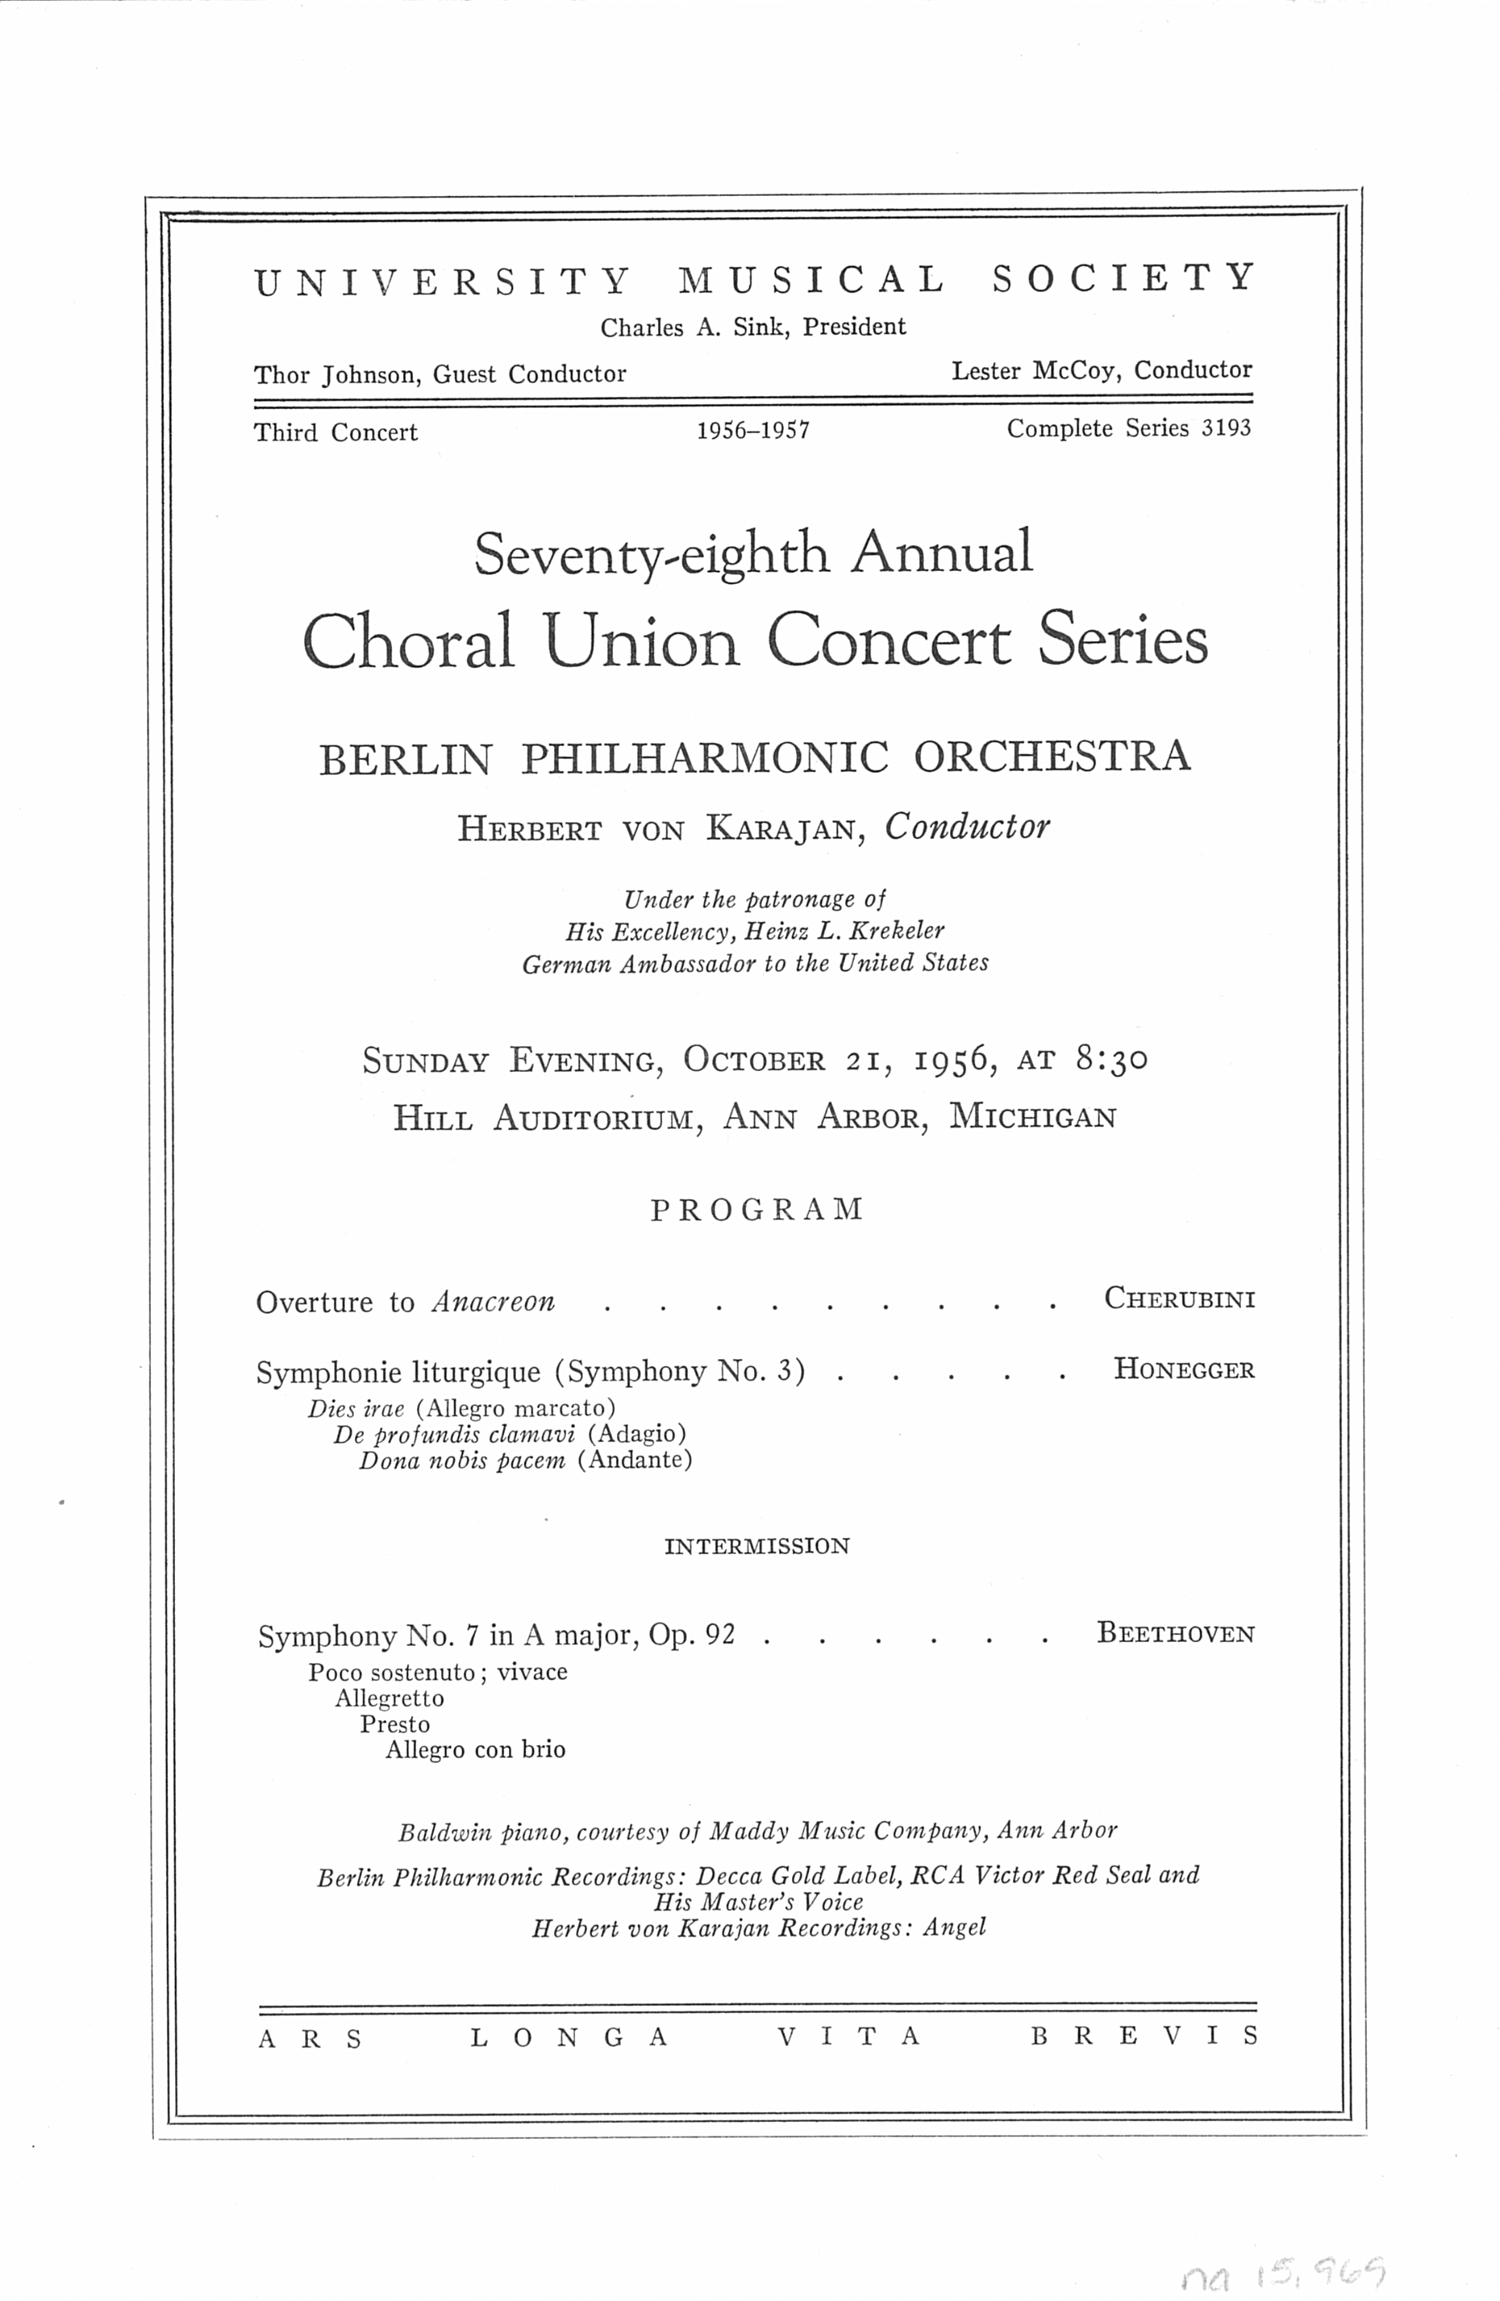 UMS Concert Program, October 21, 1956: Seventy-eighth Annual Choral Union Concert Series -- Berlin Philharmonic Orchestra image